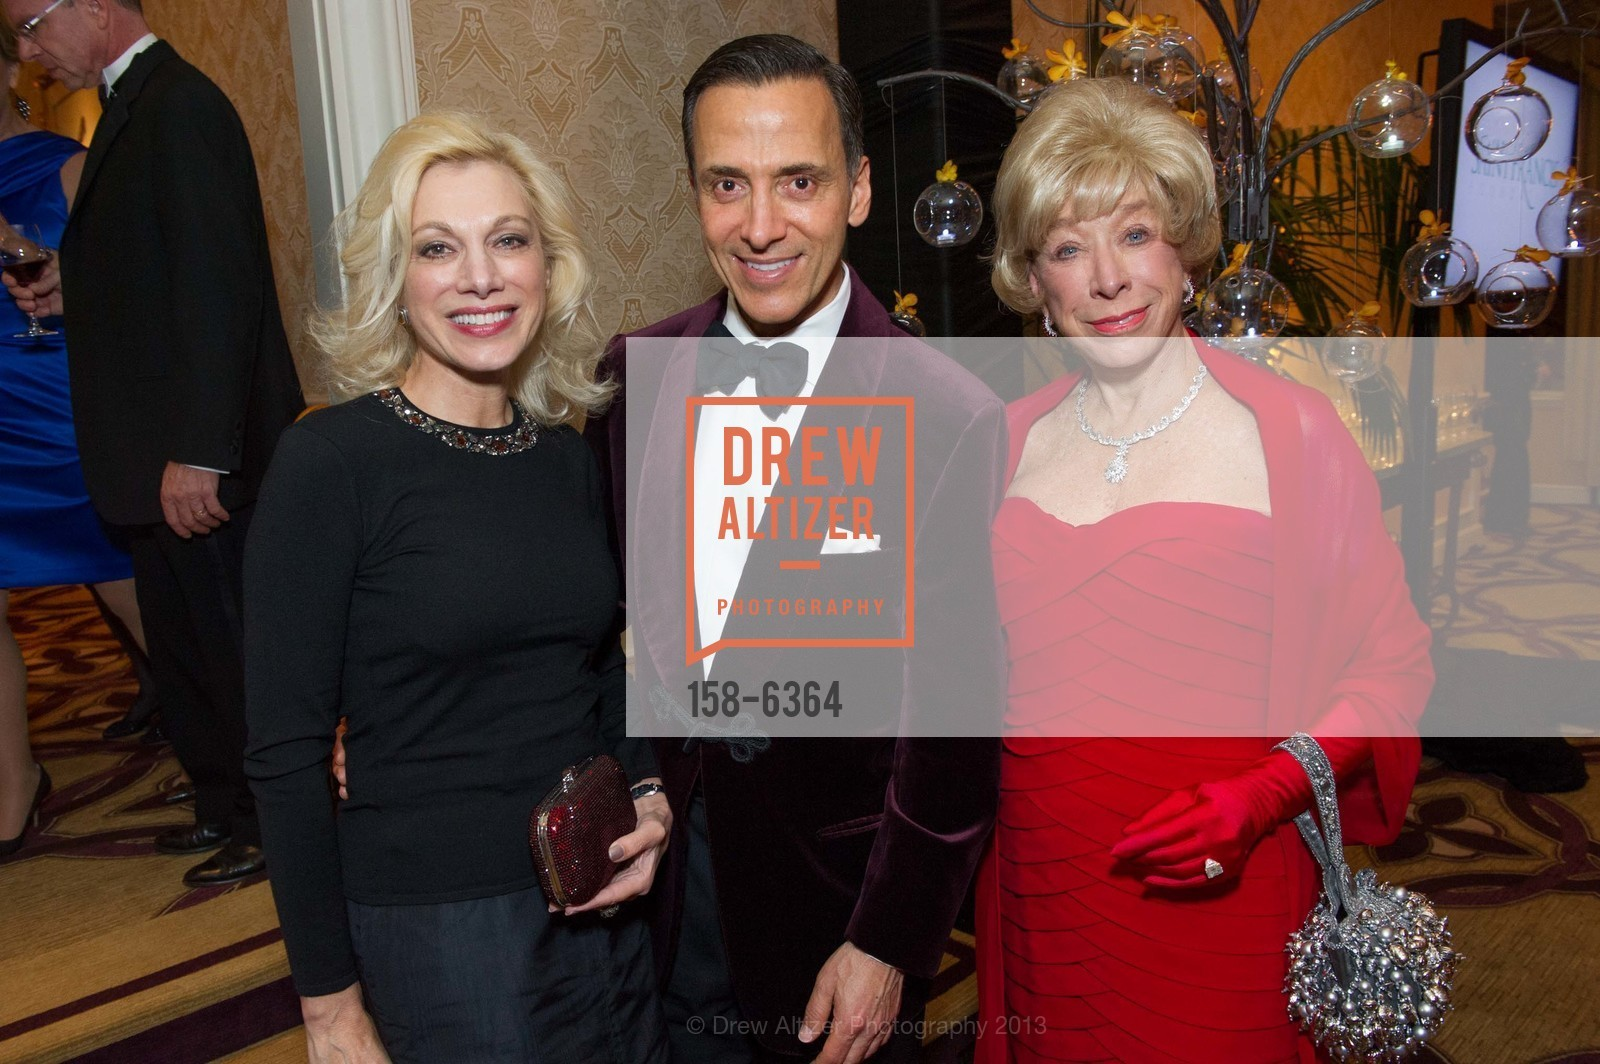 Cynthia Schreuder, Alan Malouf, Maria Pitcairn, 25th Anniversary Holiday HOB NOB ON THE HILL, US, December 6th, 2013